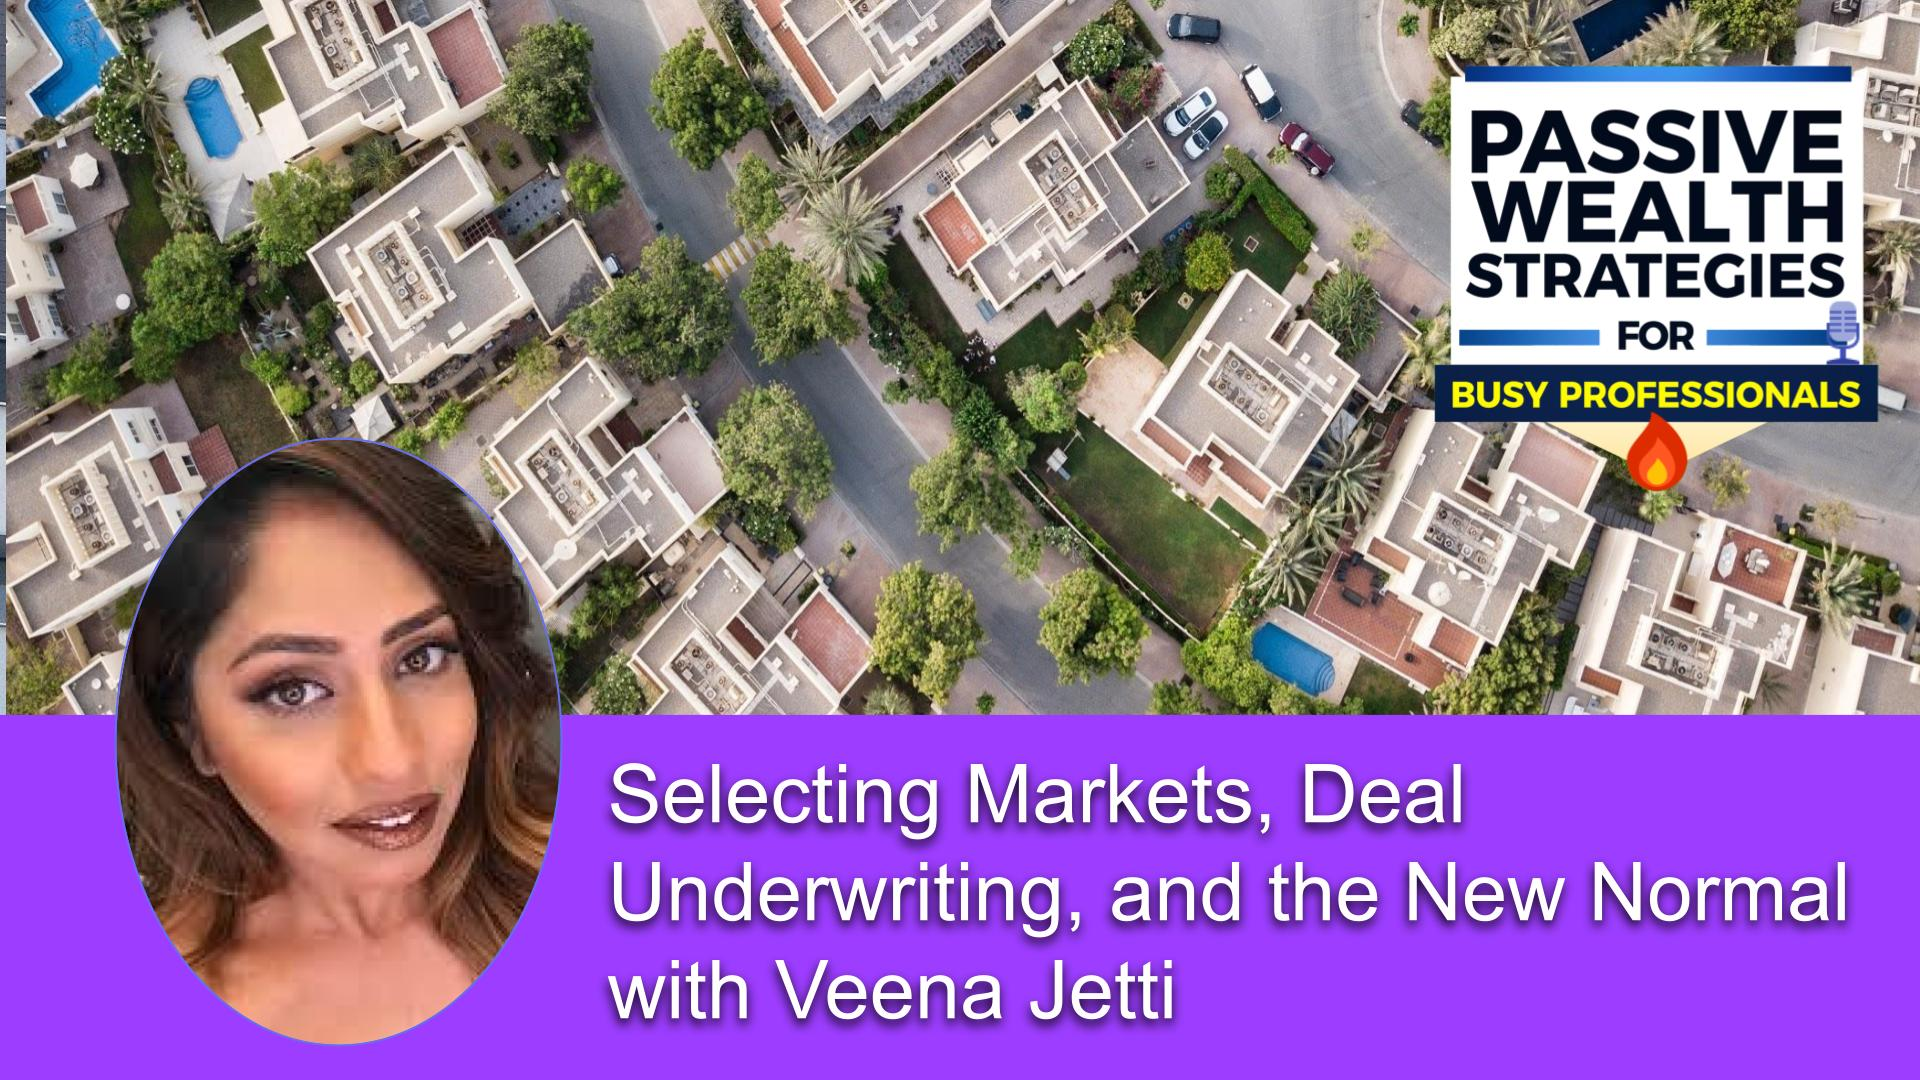 175 Selecting Markets, Deal Underwriting, and the New Normal with Veena Jetti